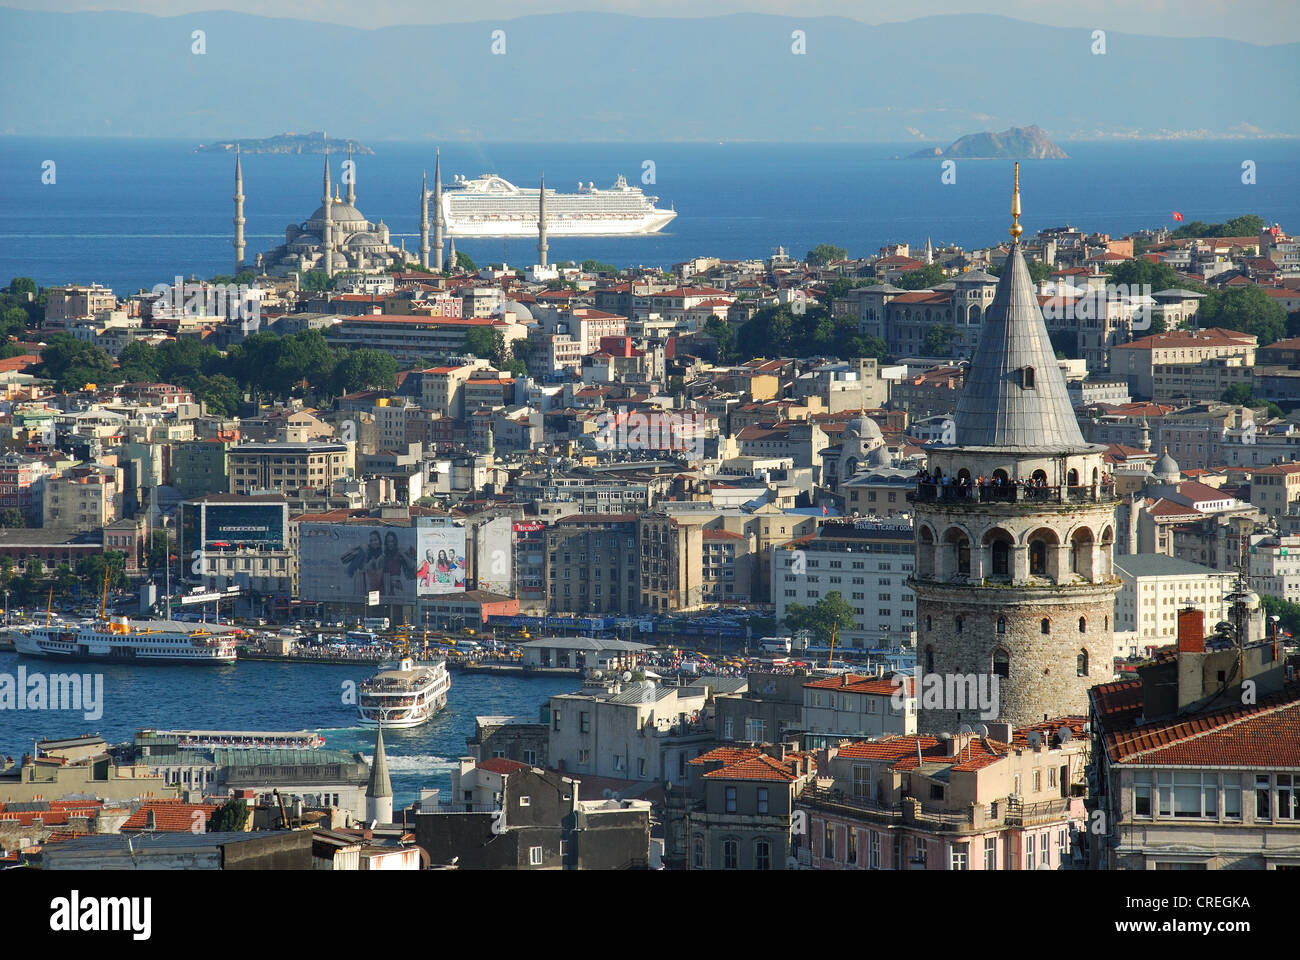 ISTANBUL, TURKEY. A view of the city from Beyoglu, with the Galata Tower on the right and the Blue Mosque in the - Stock Image